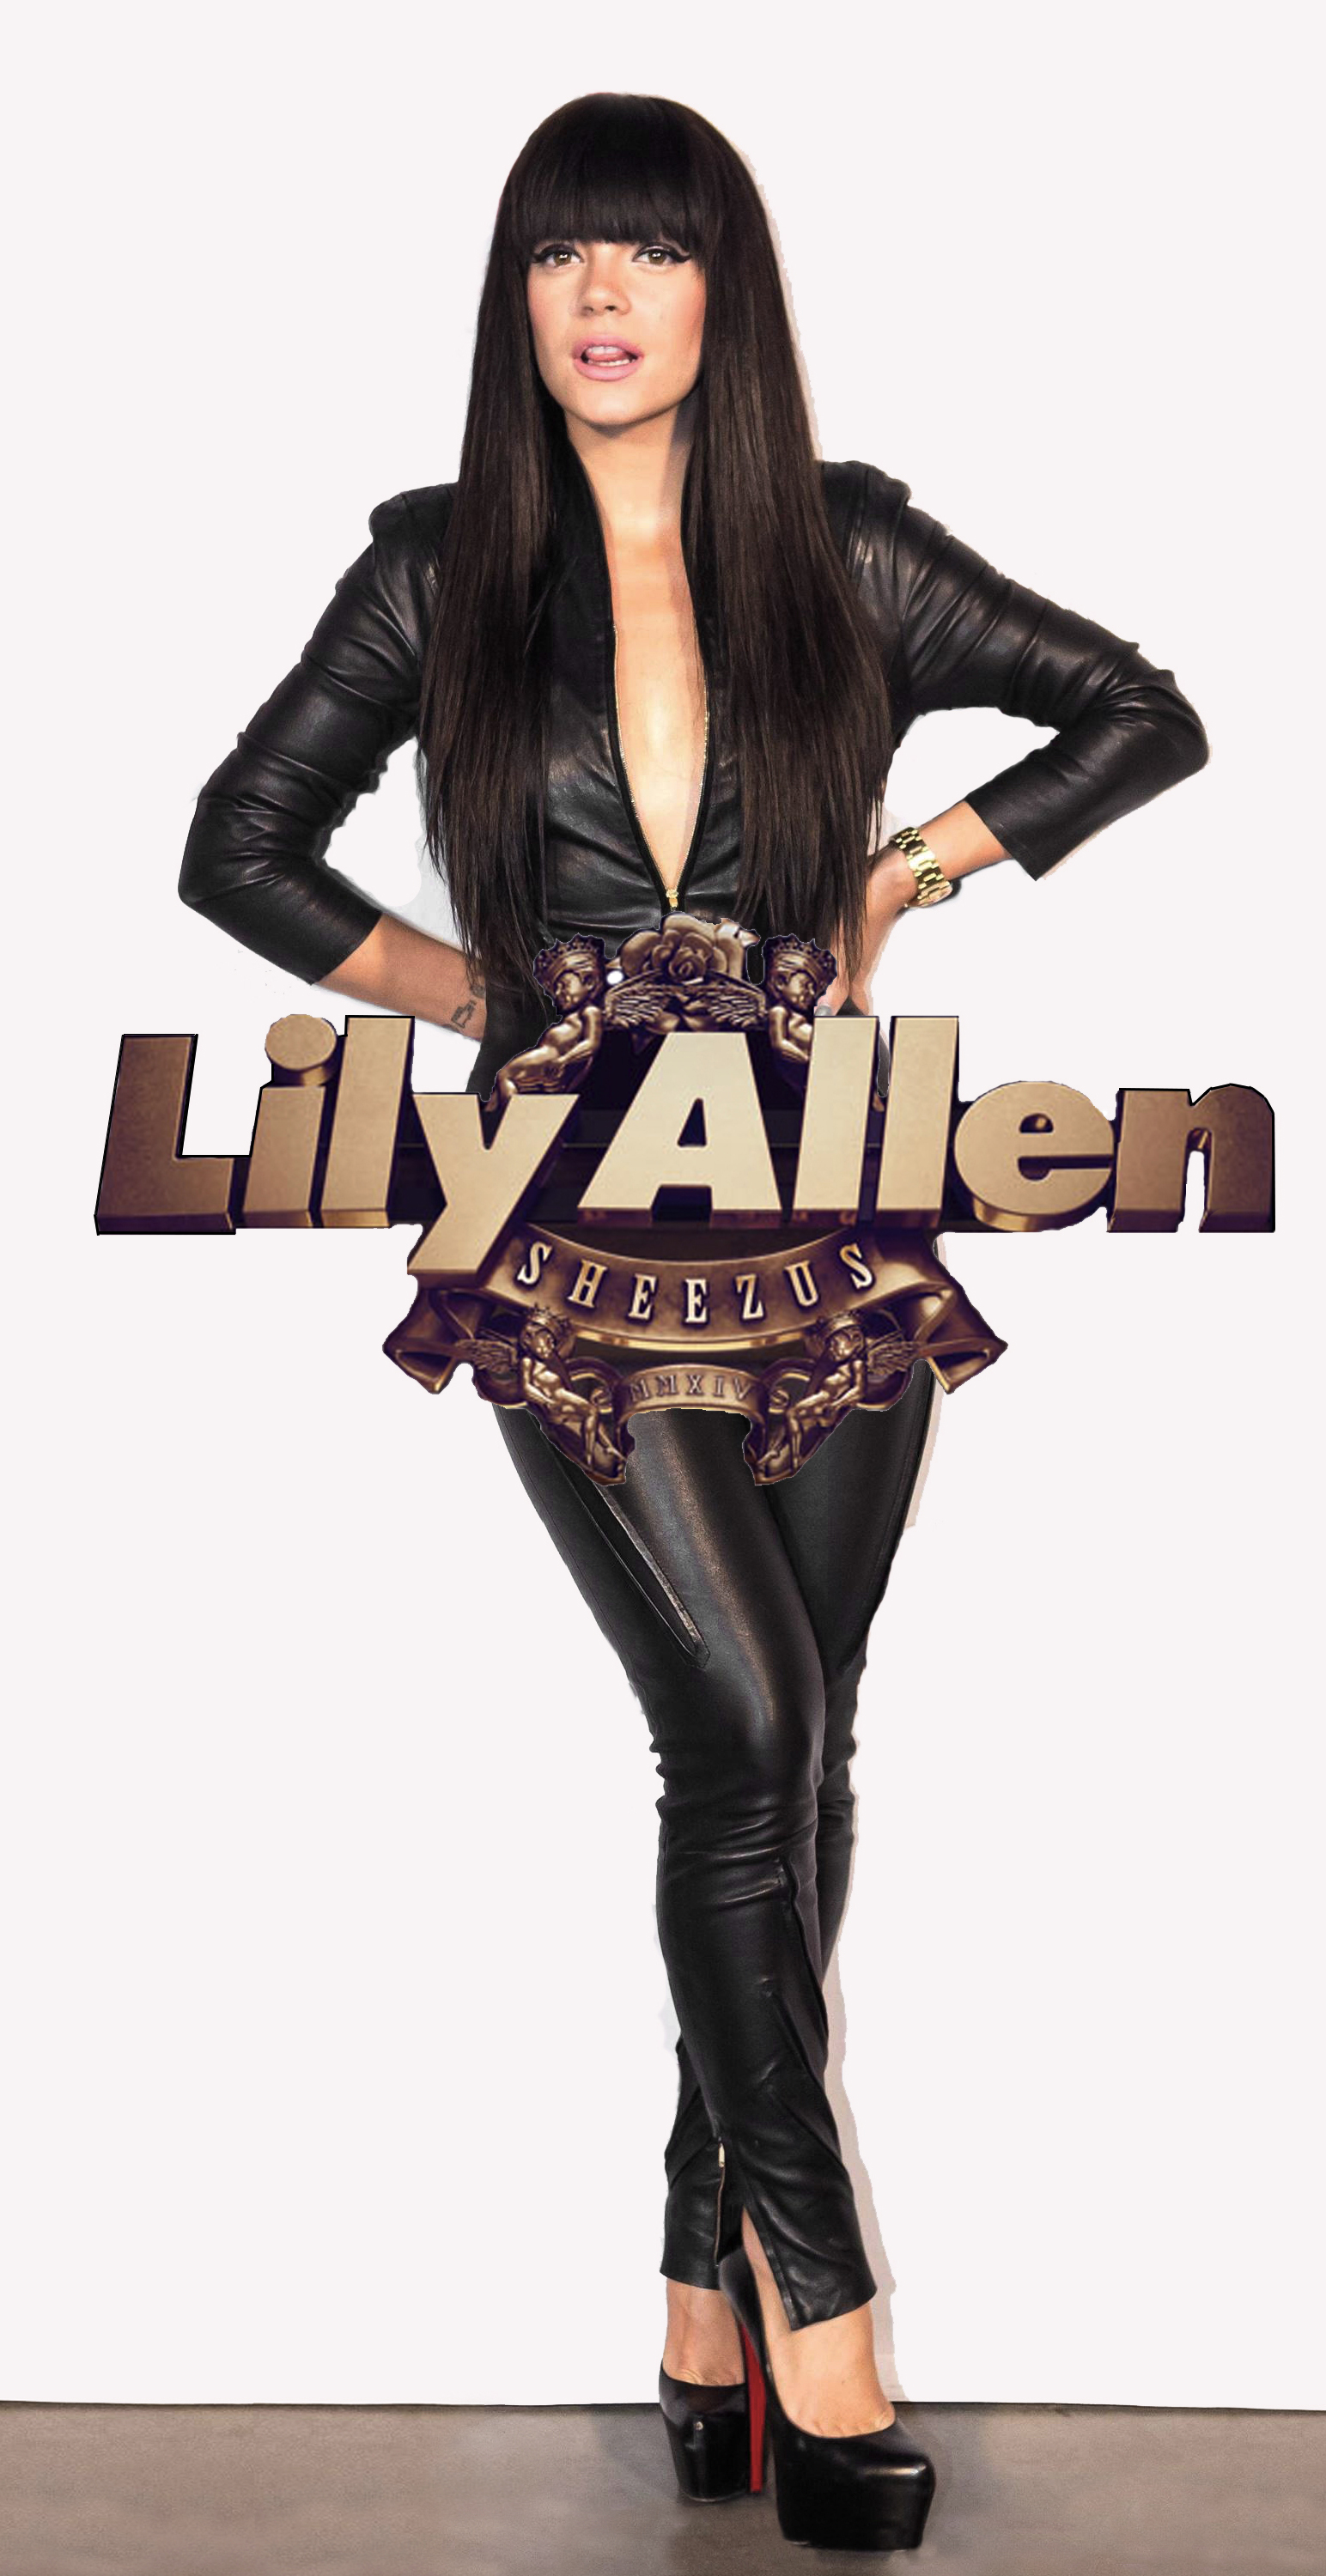 I have Lily Allen addiction!